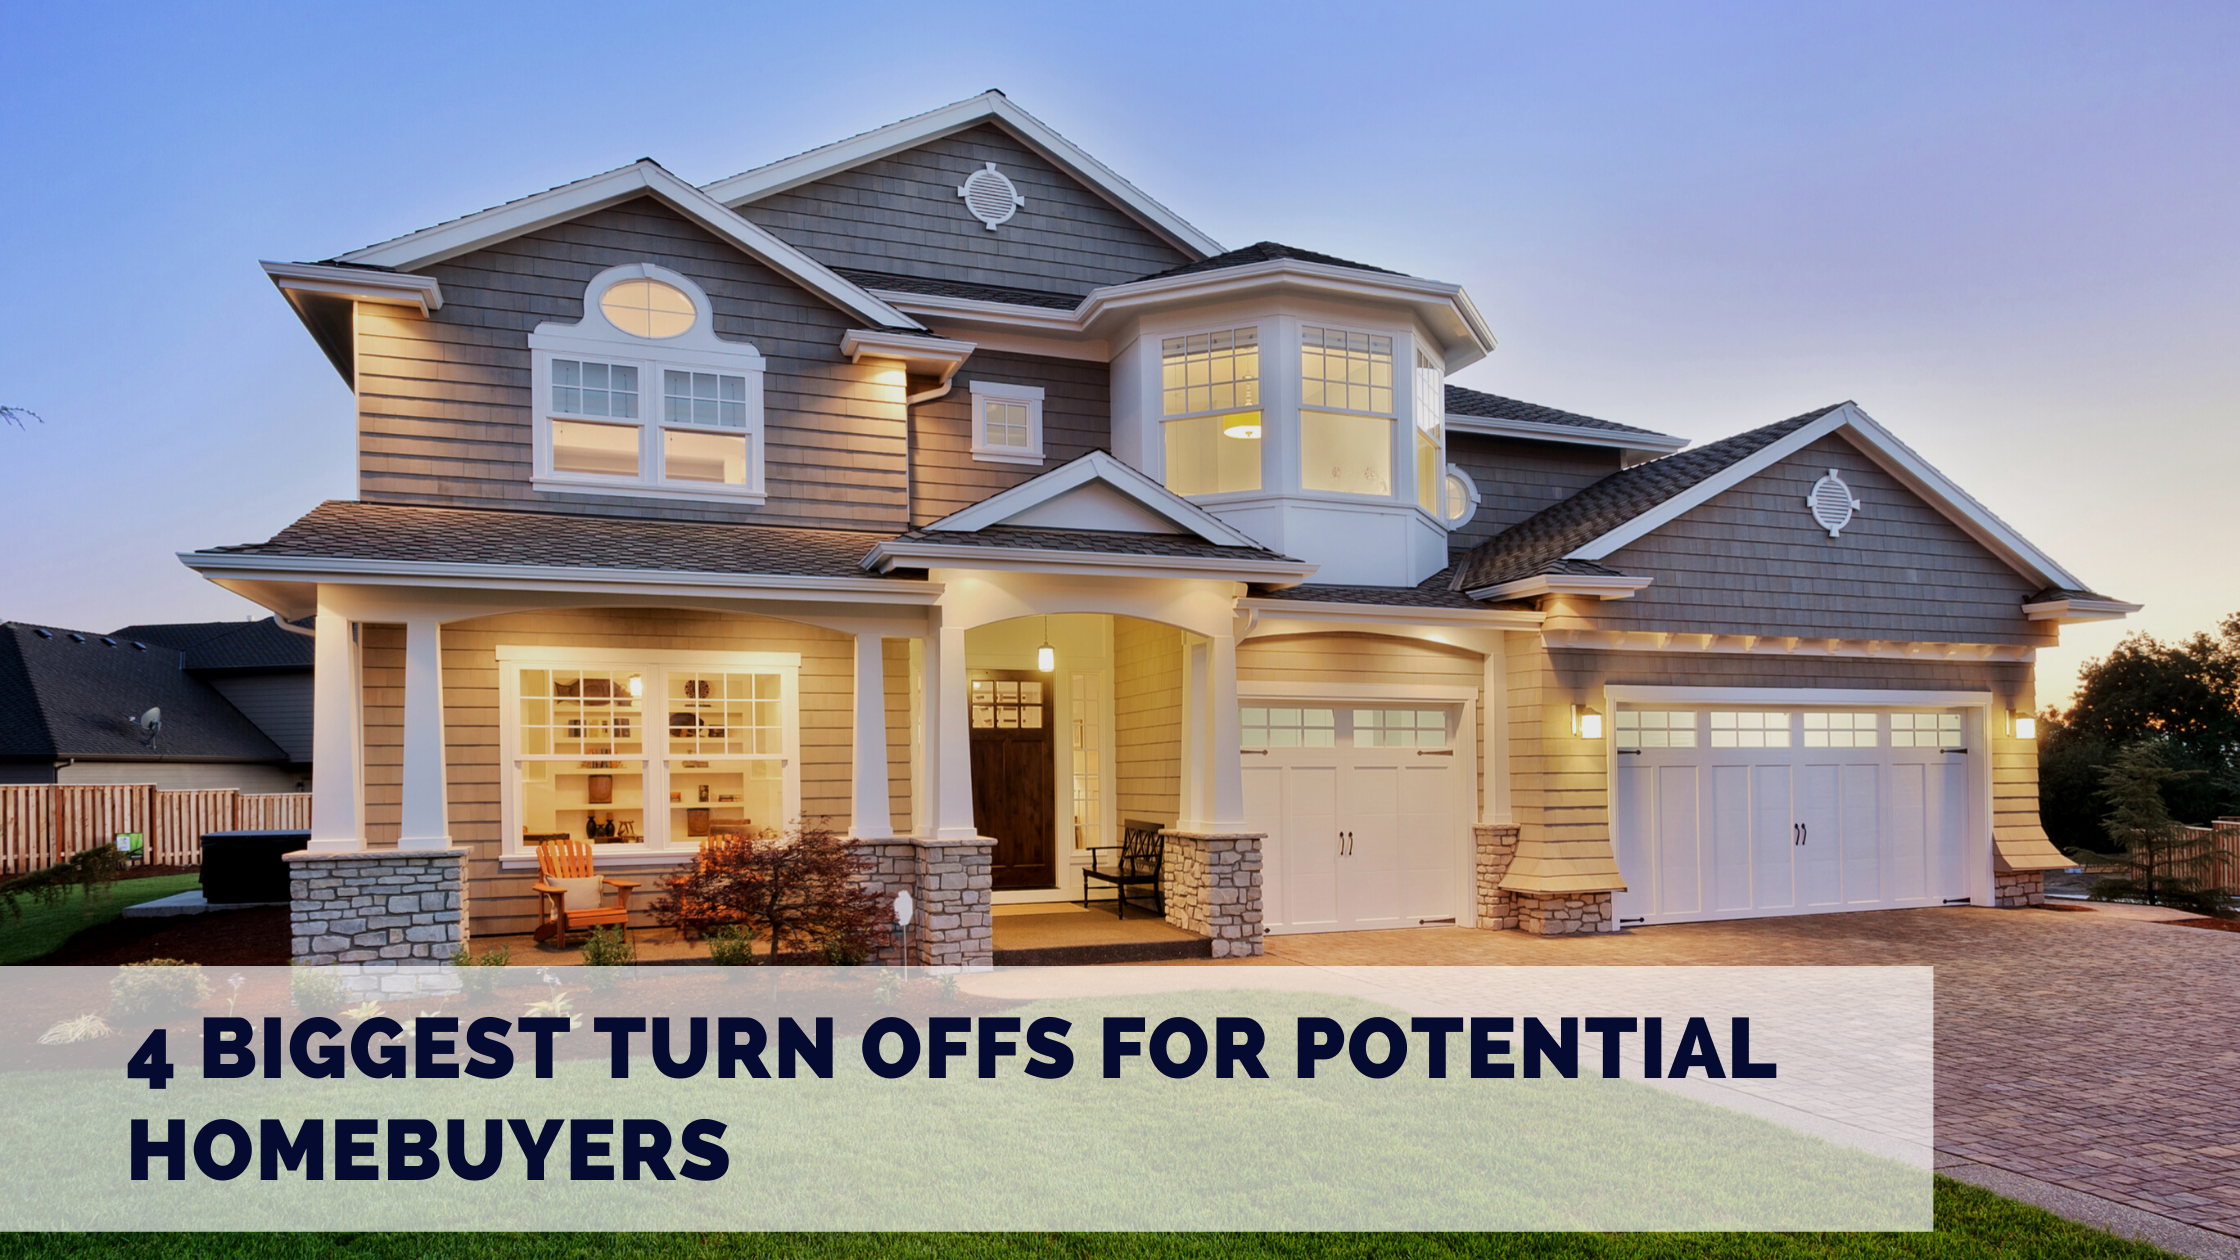 4 Biggest Turn Offs for Potential Homebuyers